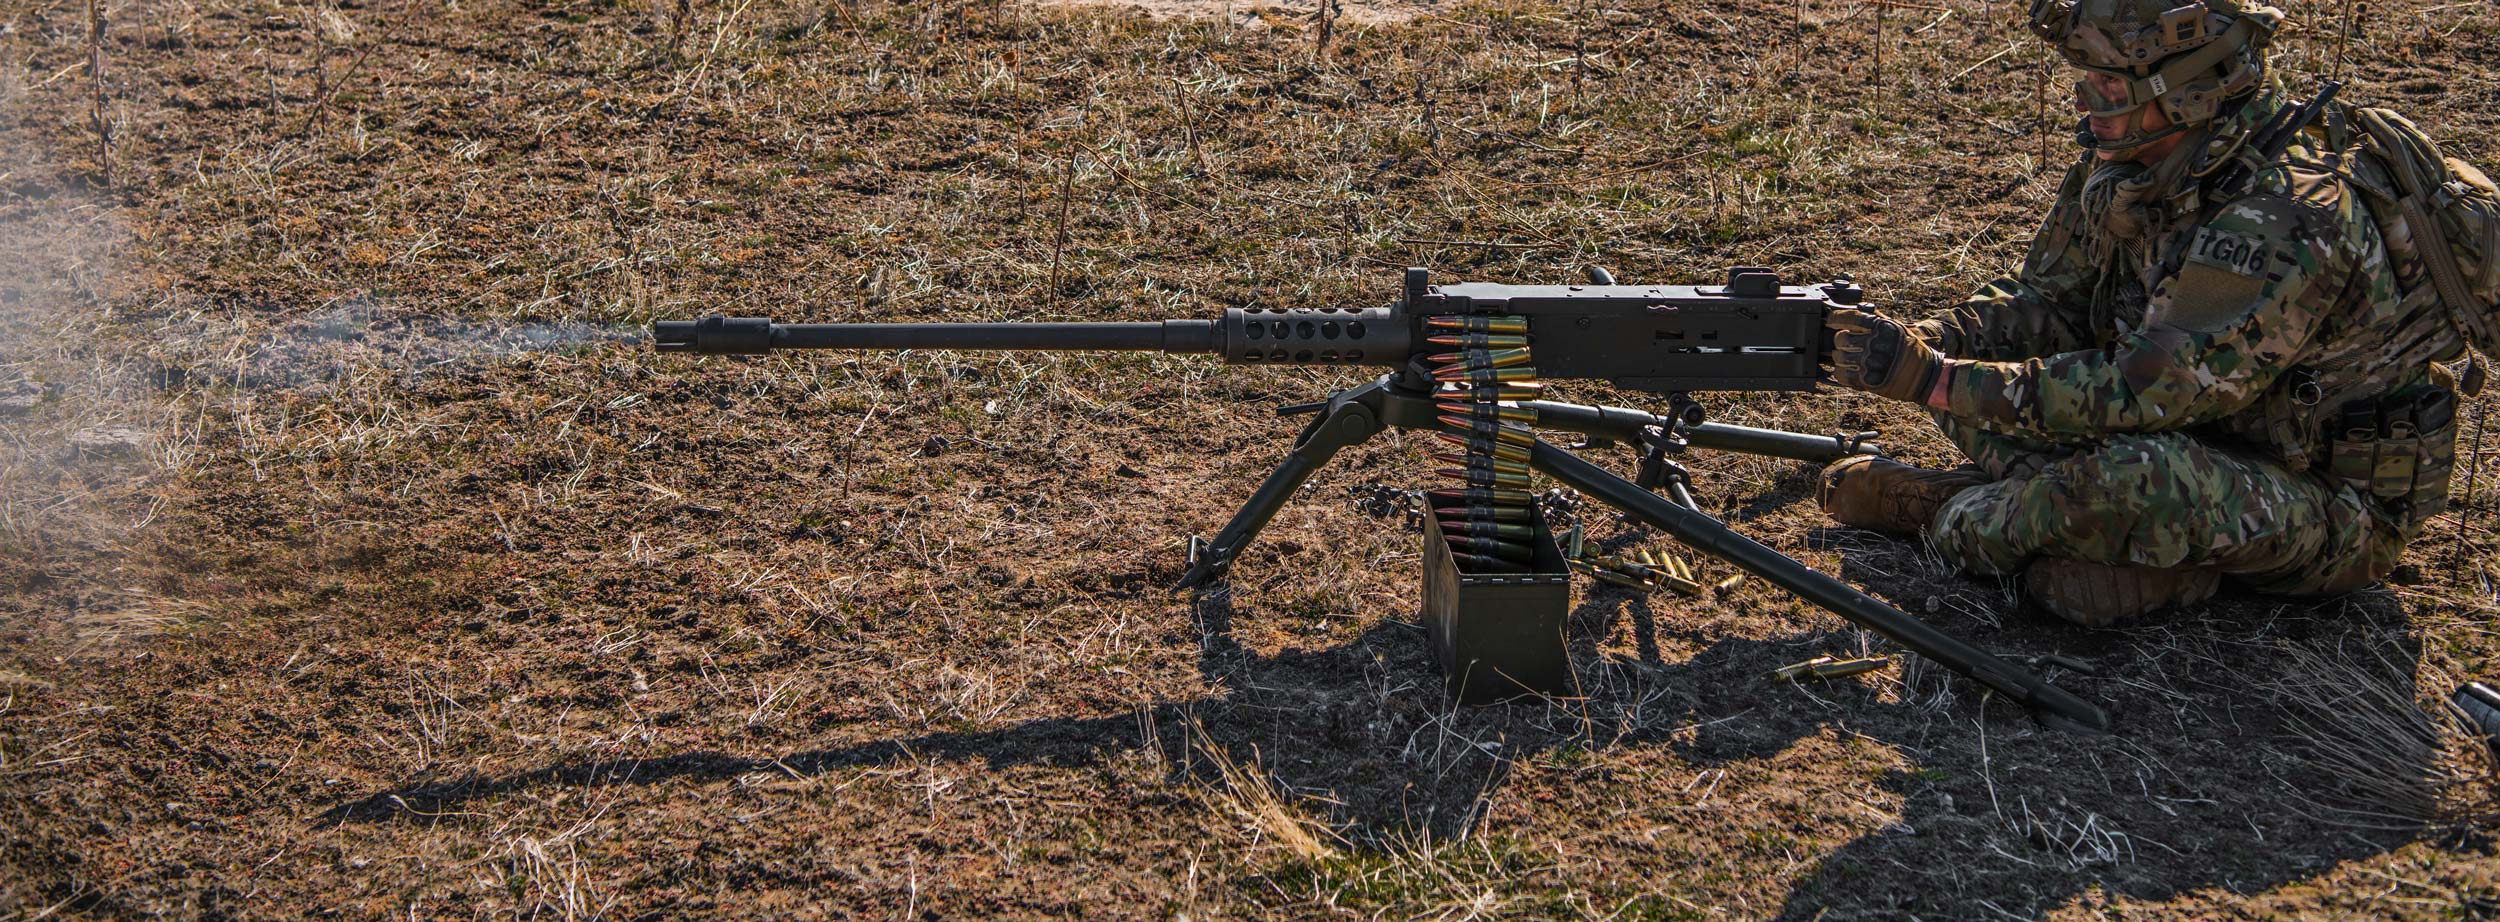 SureFire SF3P-50BMG Flash Hider (Updated w/ Video)The Ultimate Ma Deuce Flash Hider